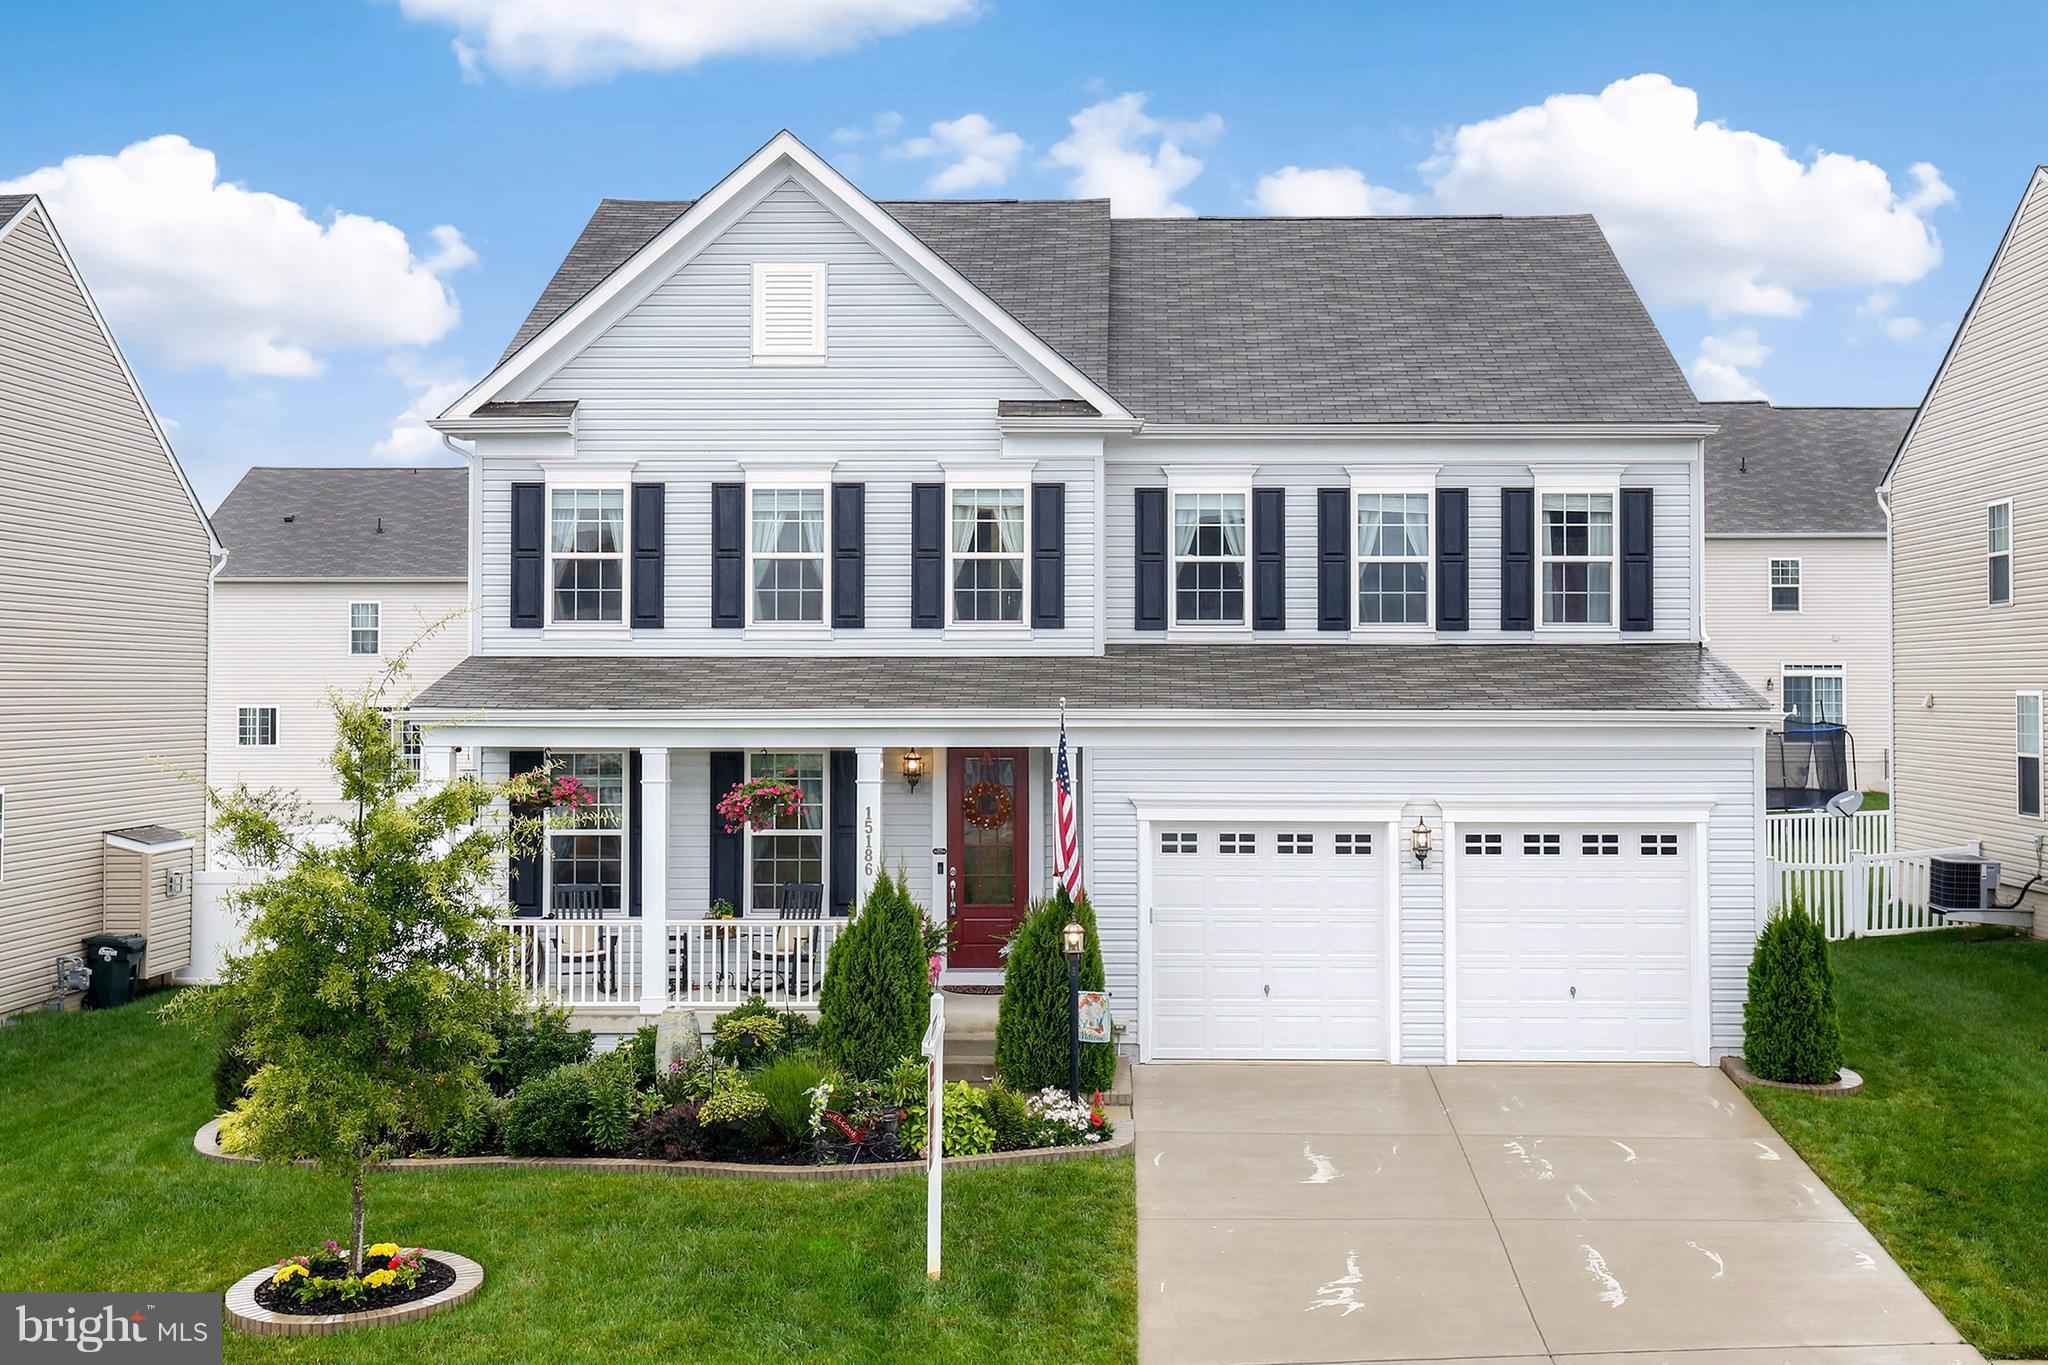 REDUCED!  Impeccable & high end upgrades from top to bottom!  Kitchen features custom island w/ exotic granite, backsplash & is adjoined by a comfortable Family Room w/ fireplace.  Upper level has 3 FULL BA! Amazing yard complete w/ stone patio & night lighting. Finished w/o LL has in-law suite, rec room w/ theatre seating, exercise/pool room & wet bar. Includes irrigation system!